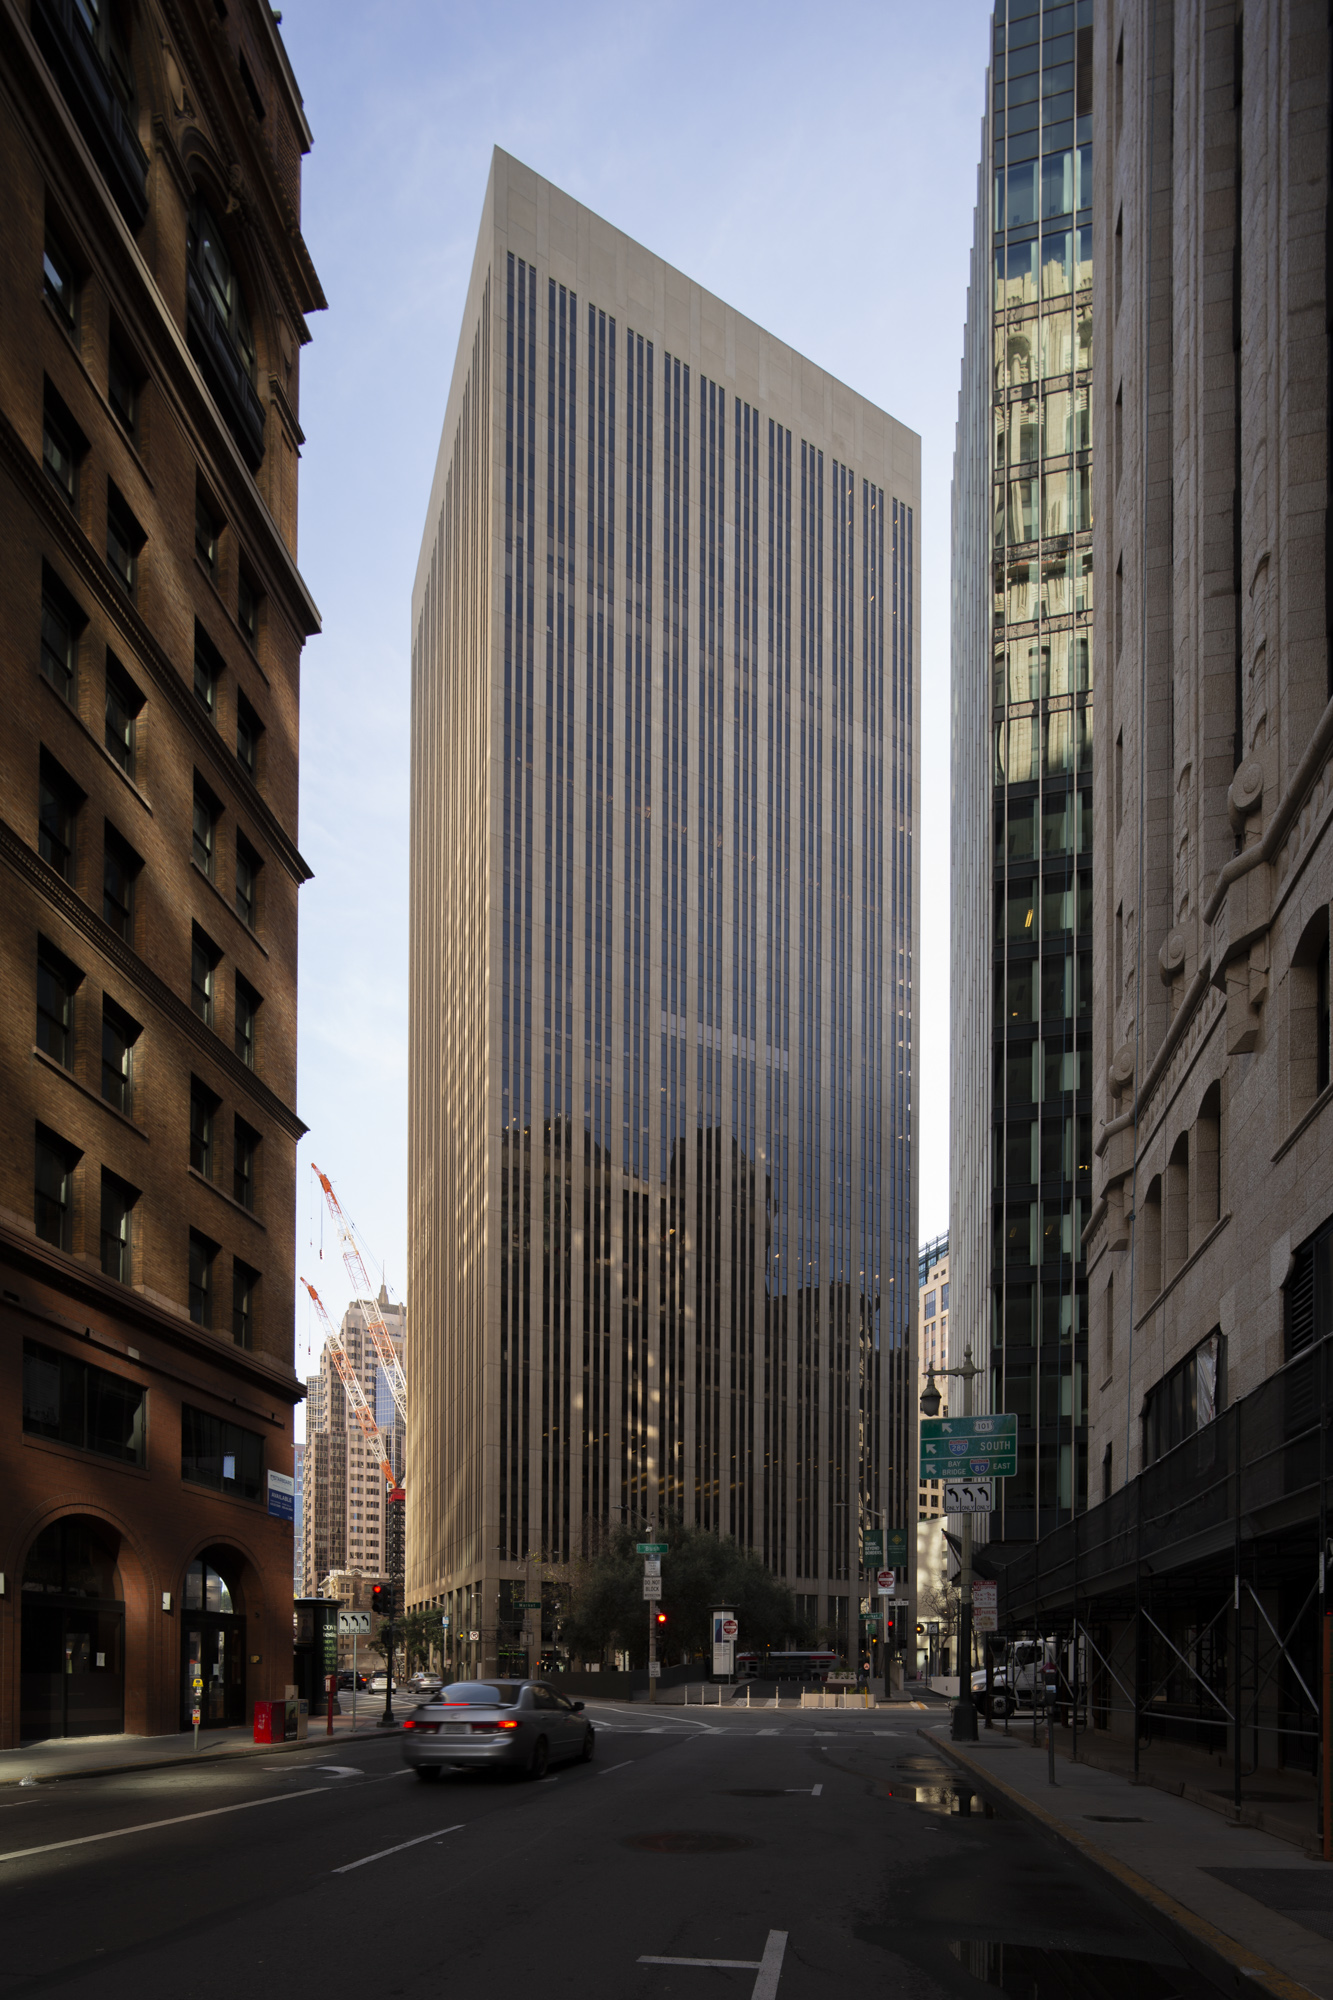 525 Market Street, image by Andrew Campbell Nelson